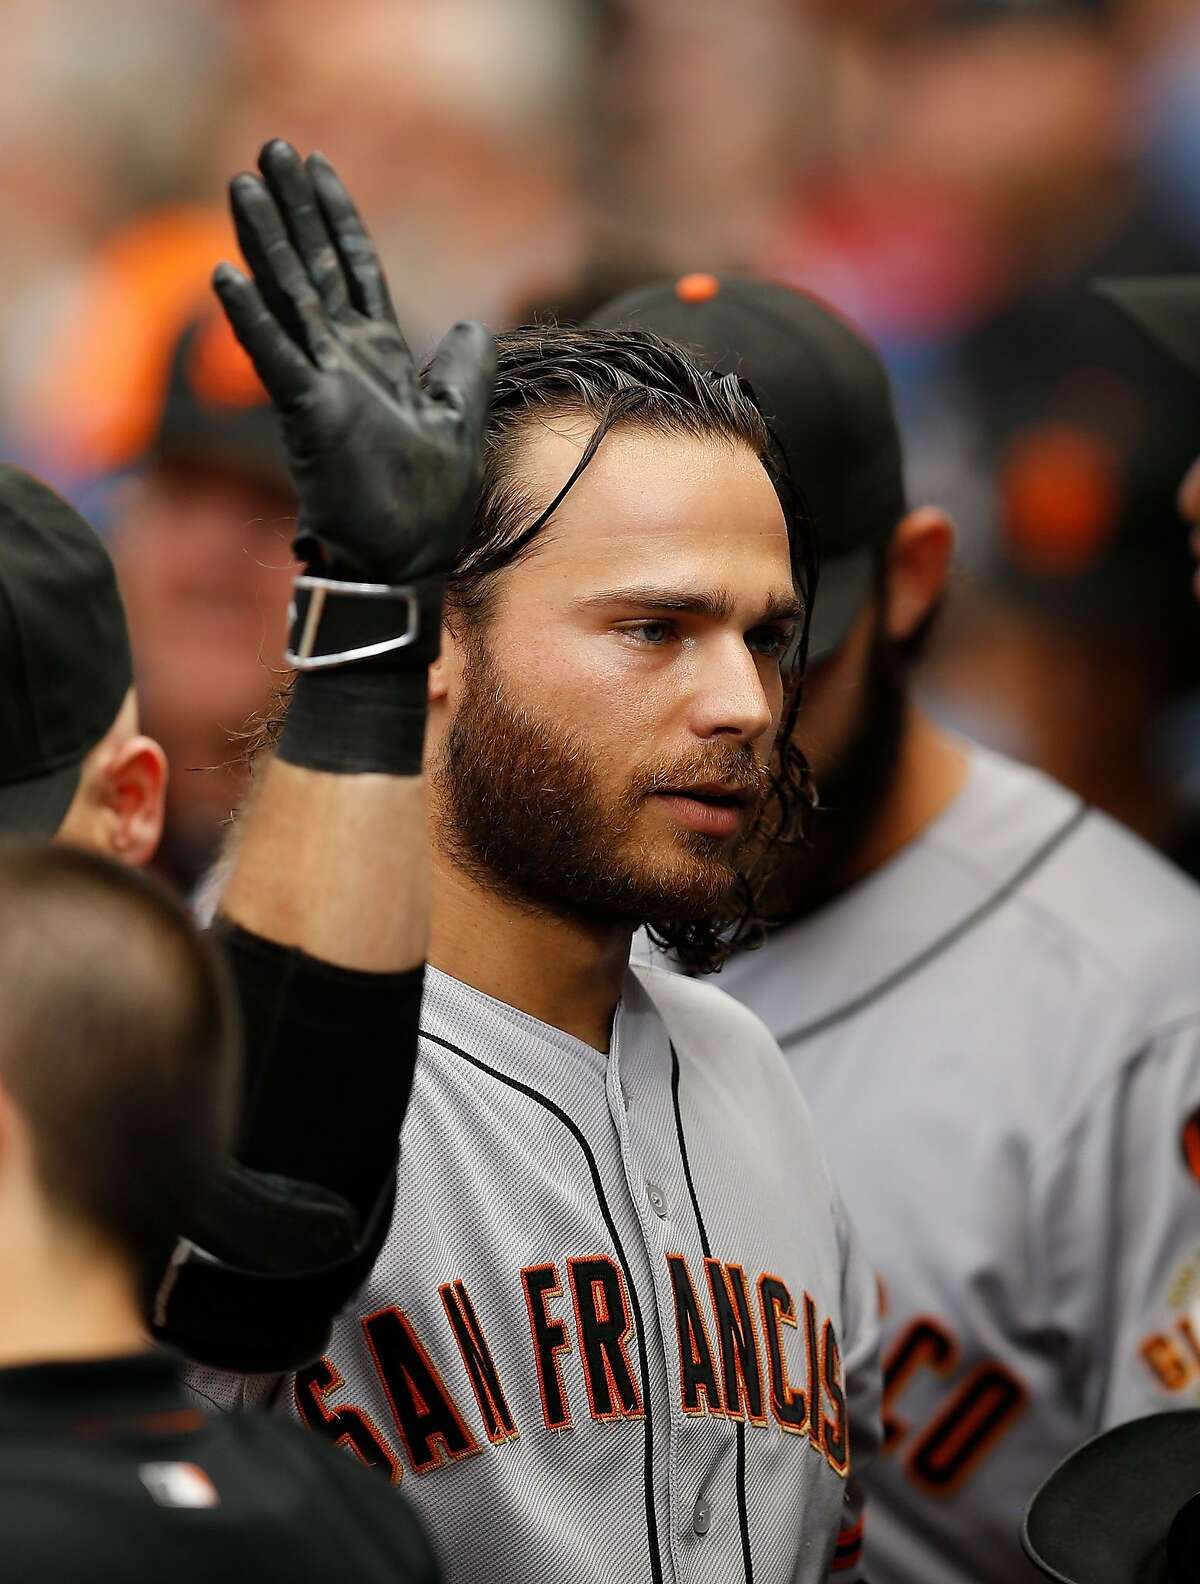 ATLANTA, GA - AUGUST 03: Brandon Crawford #35 of the San Francisco Giants is congratulated in the dugout after hitting a solo home run in the second inning during the game against the Atlanta Braves at Turner Field on August 3, 2015 in Atlanta, Georgia. (Photo by Mike Zarrilli/Getty Images)